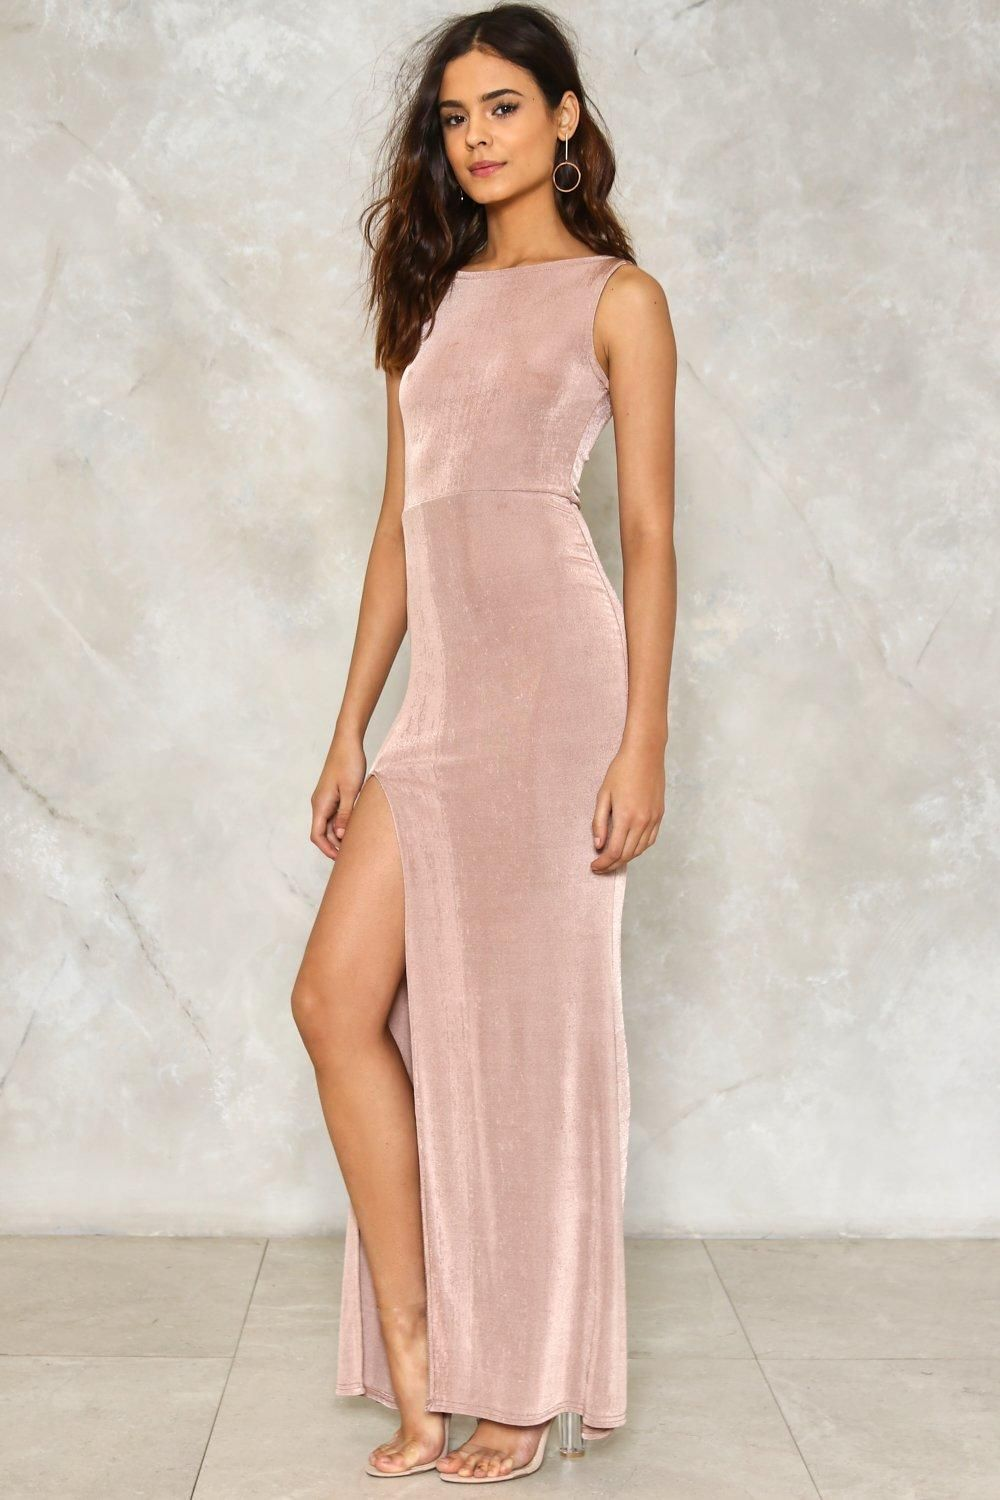 best new year's eve party dresses - stylish designer dress ideas